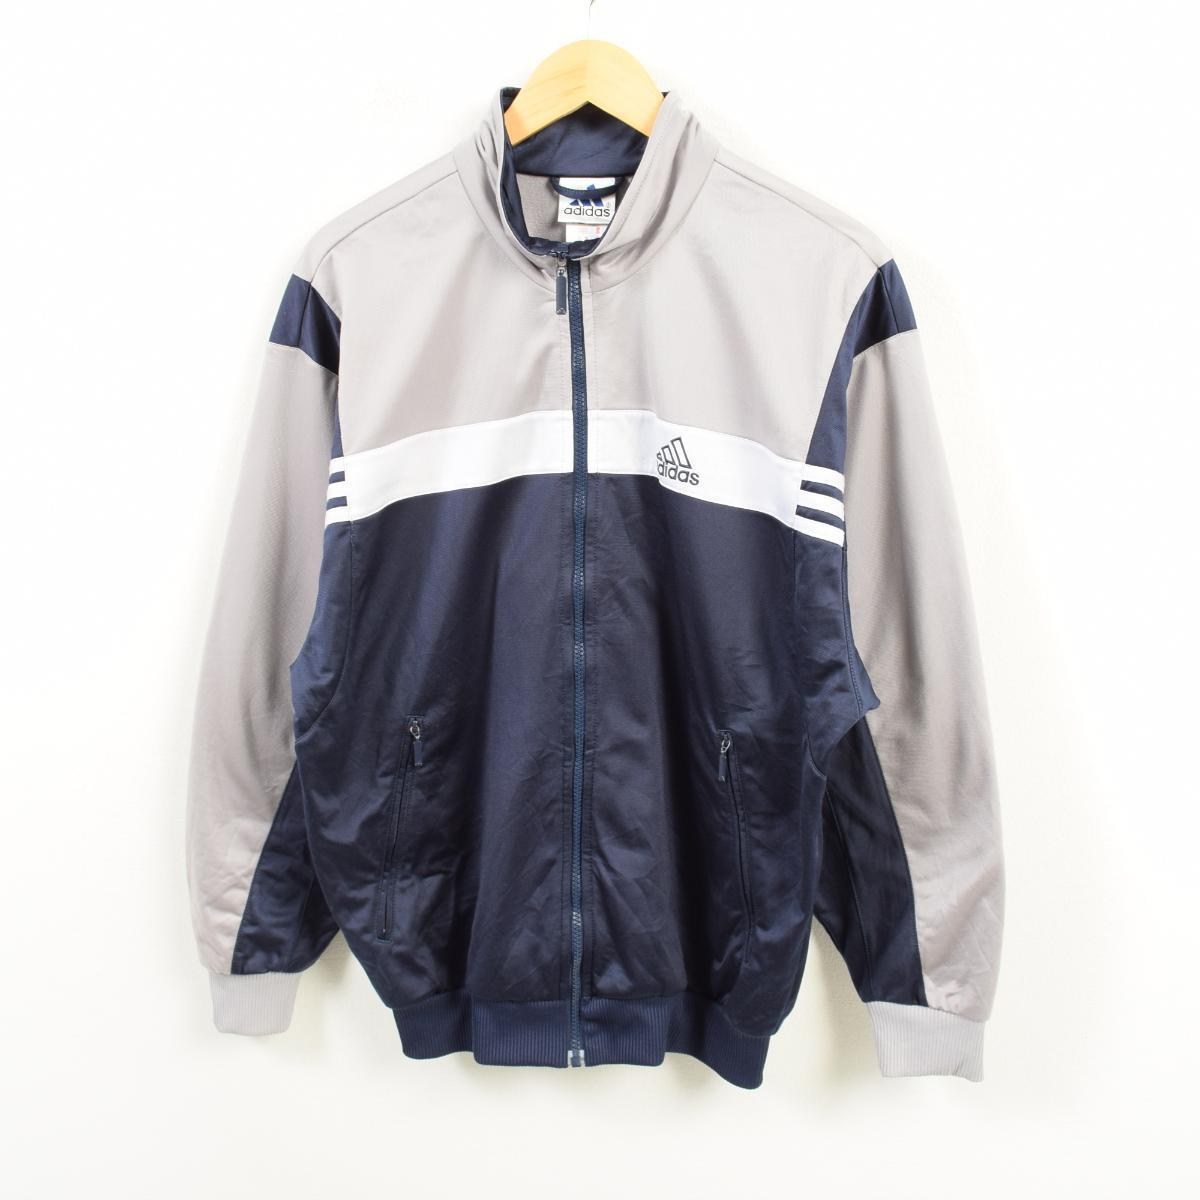 3d7be0d2a23f VINTAGE CLOTHING JAM  90s Adidas adidas jersey truck jacket men L ...